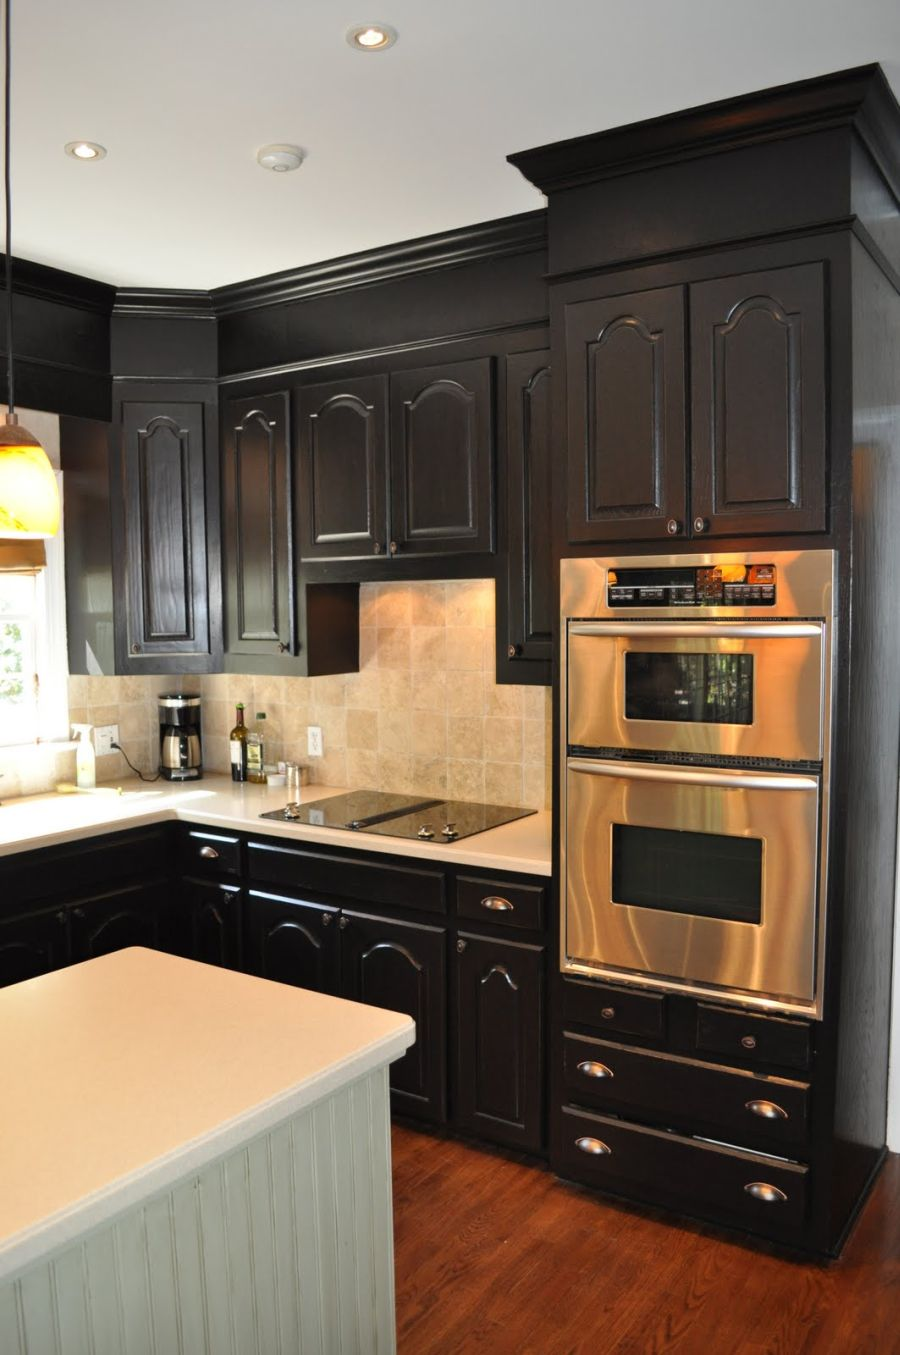 black kitchen cabinets images photo - 1